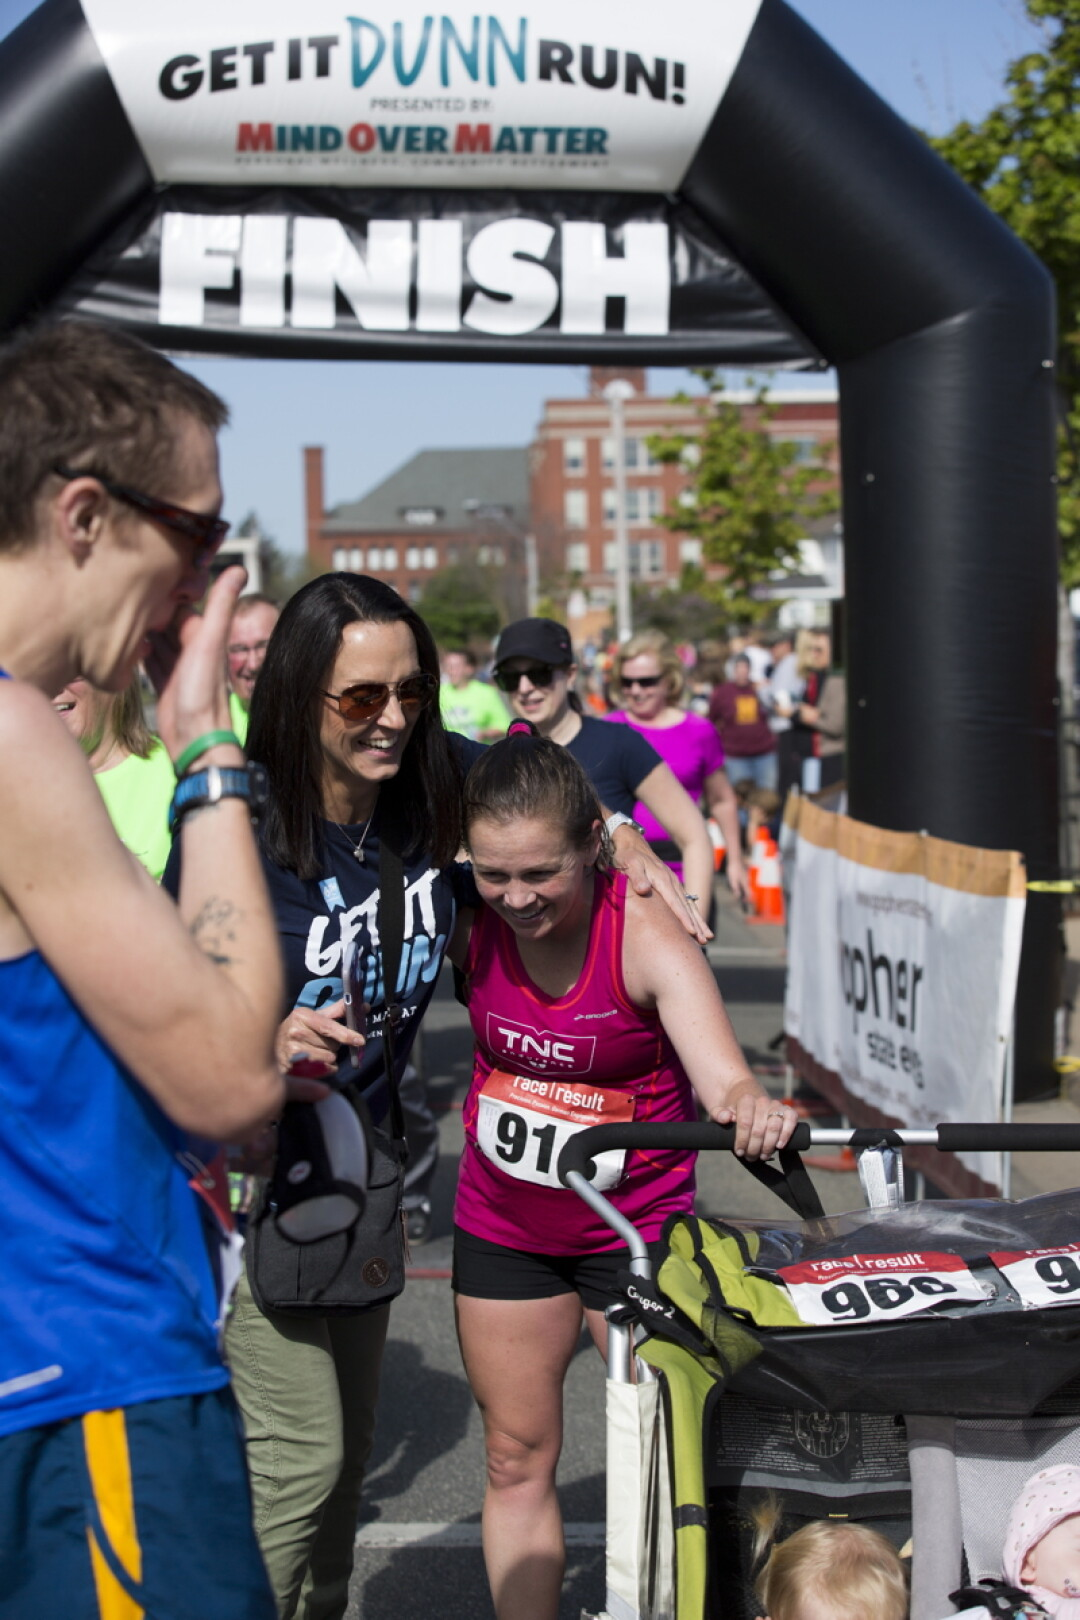 SHE DUNN IT.  Nichole Porath broke her own world record for the fastest women's half marathon with a double stroller at the 2018 Get it Dunn Run in Menomonie.